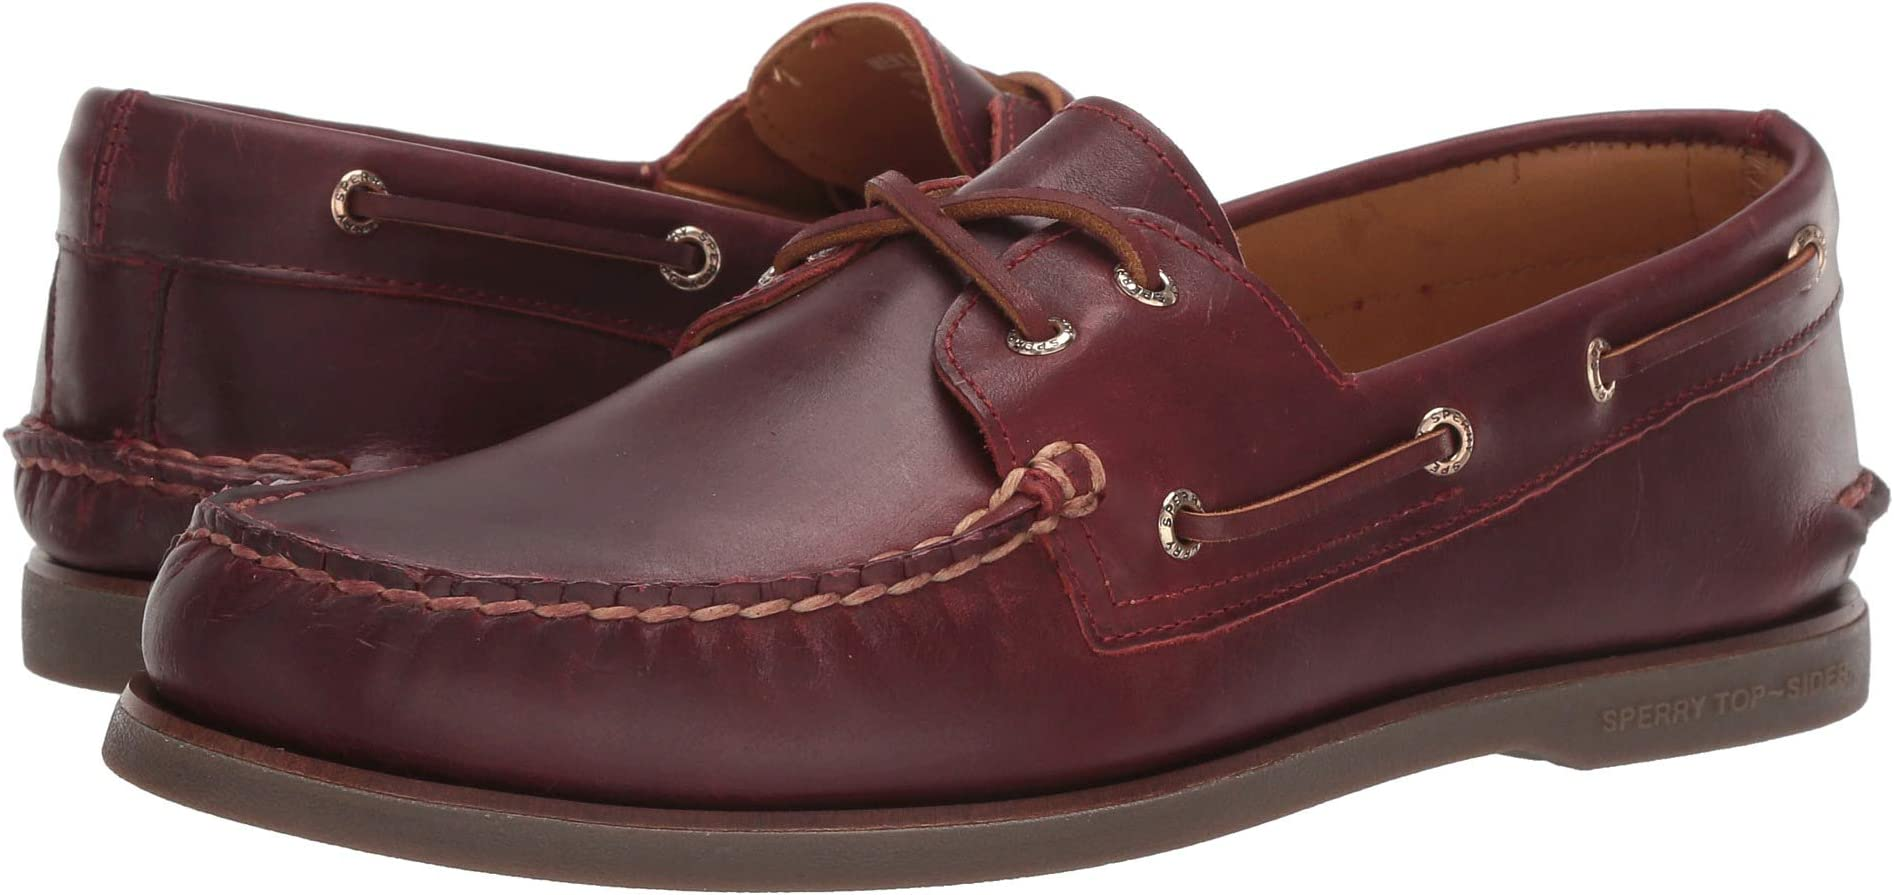 Sperry Boat Shoes, Sandals | |